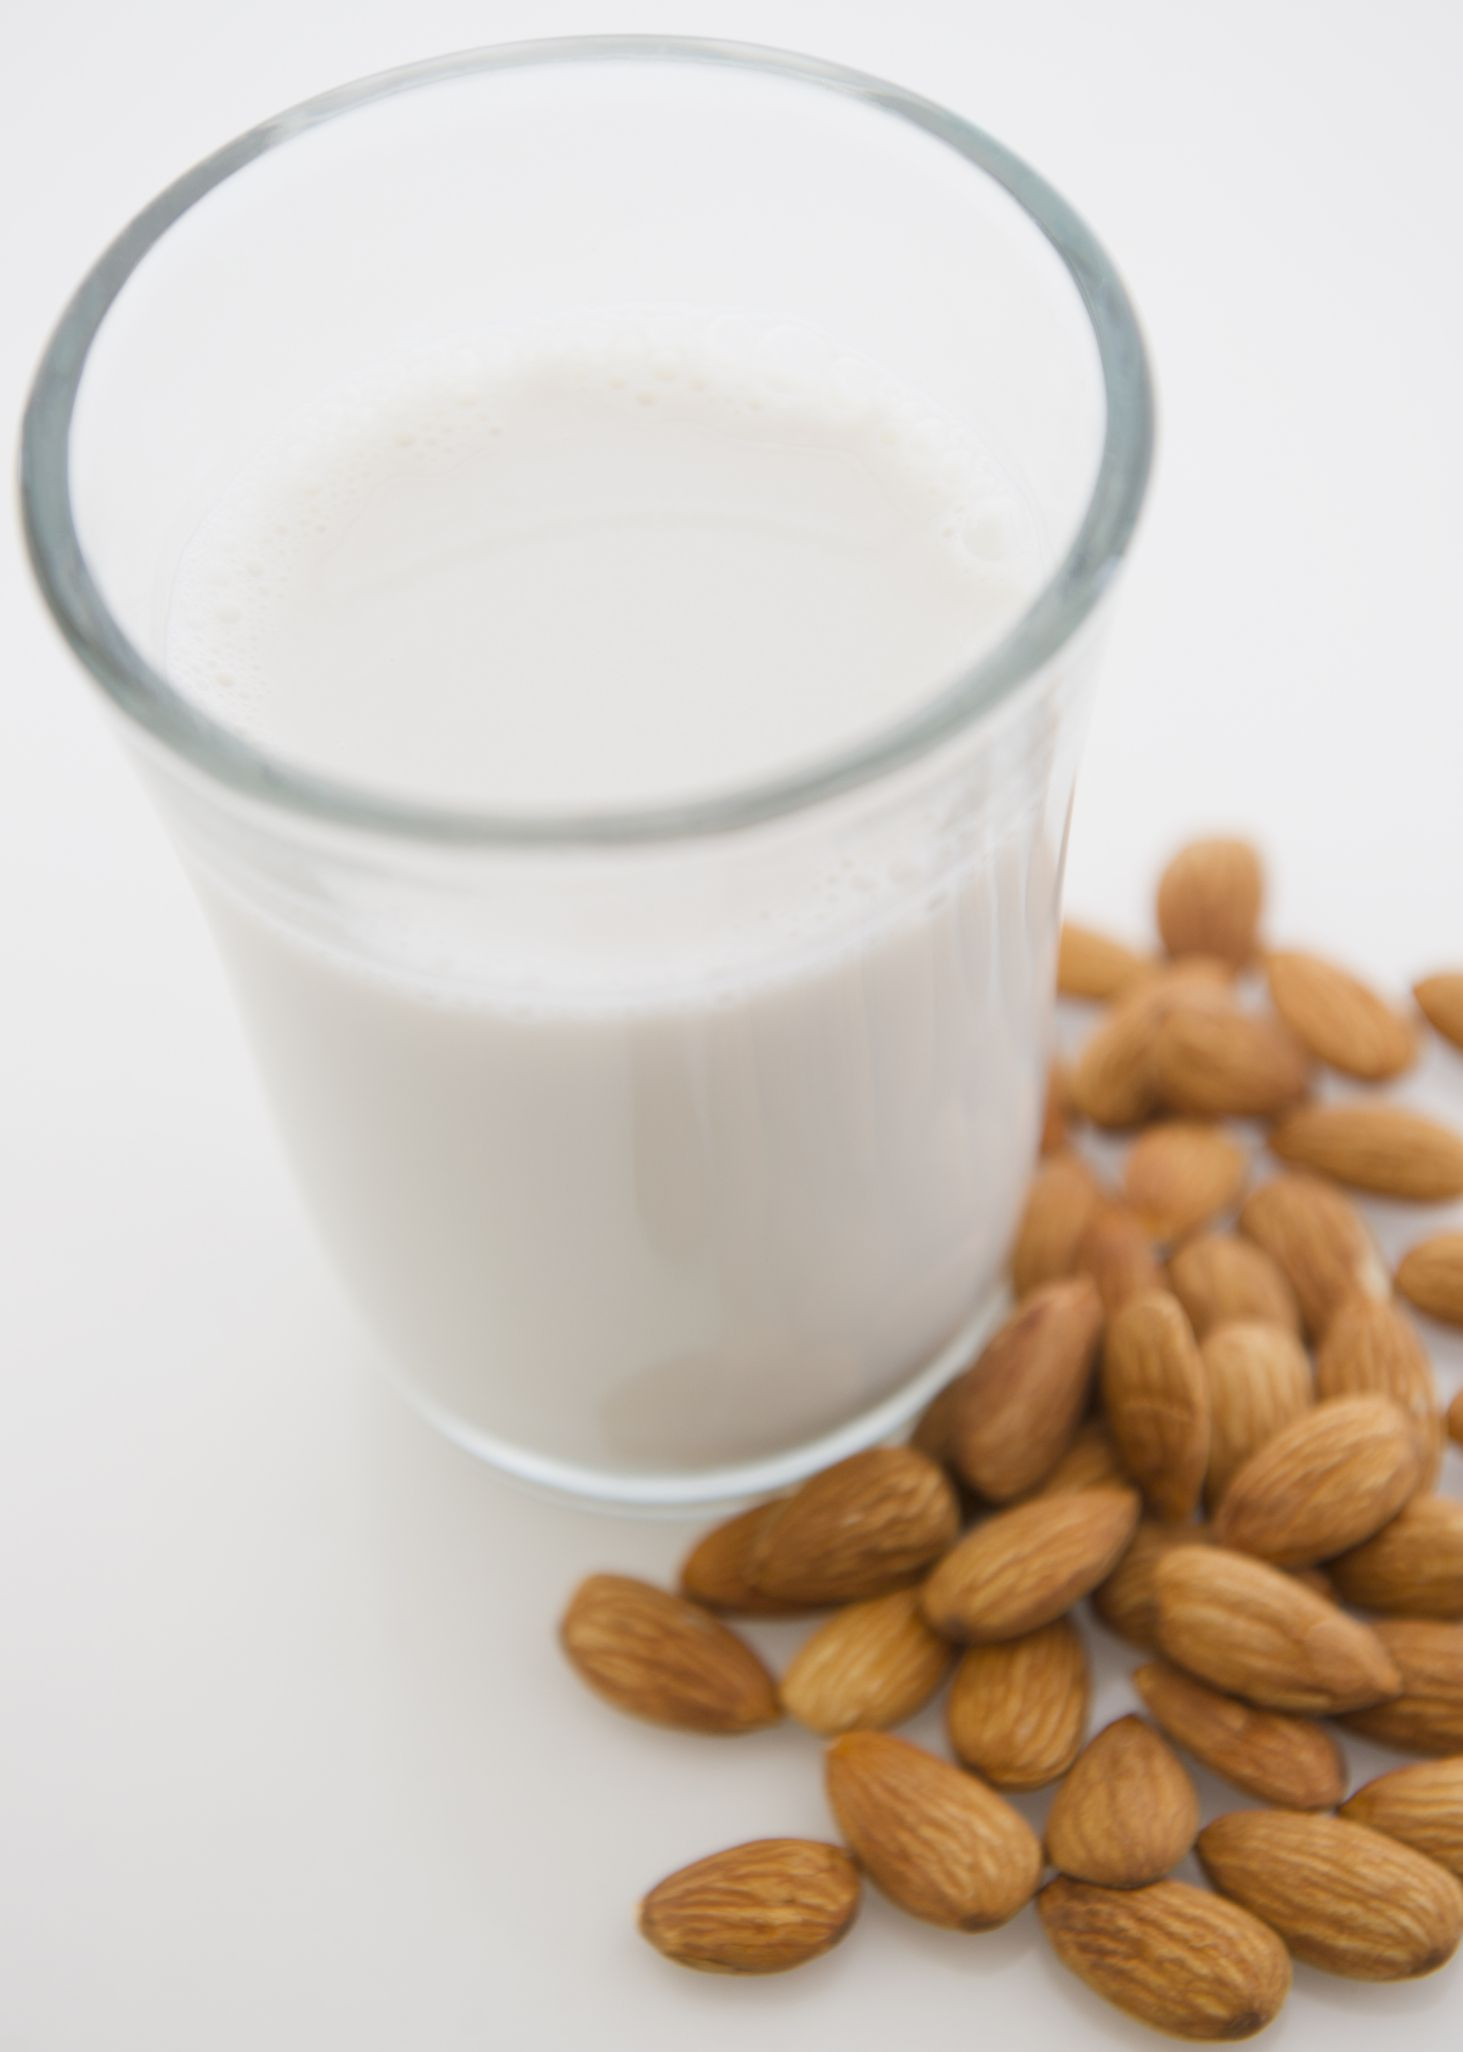 how to use almond milk in cooking